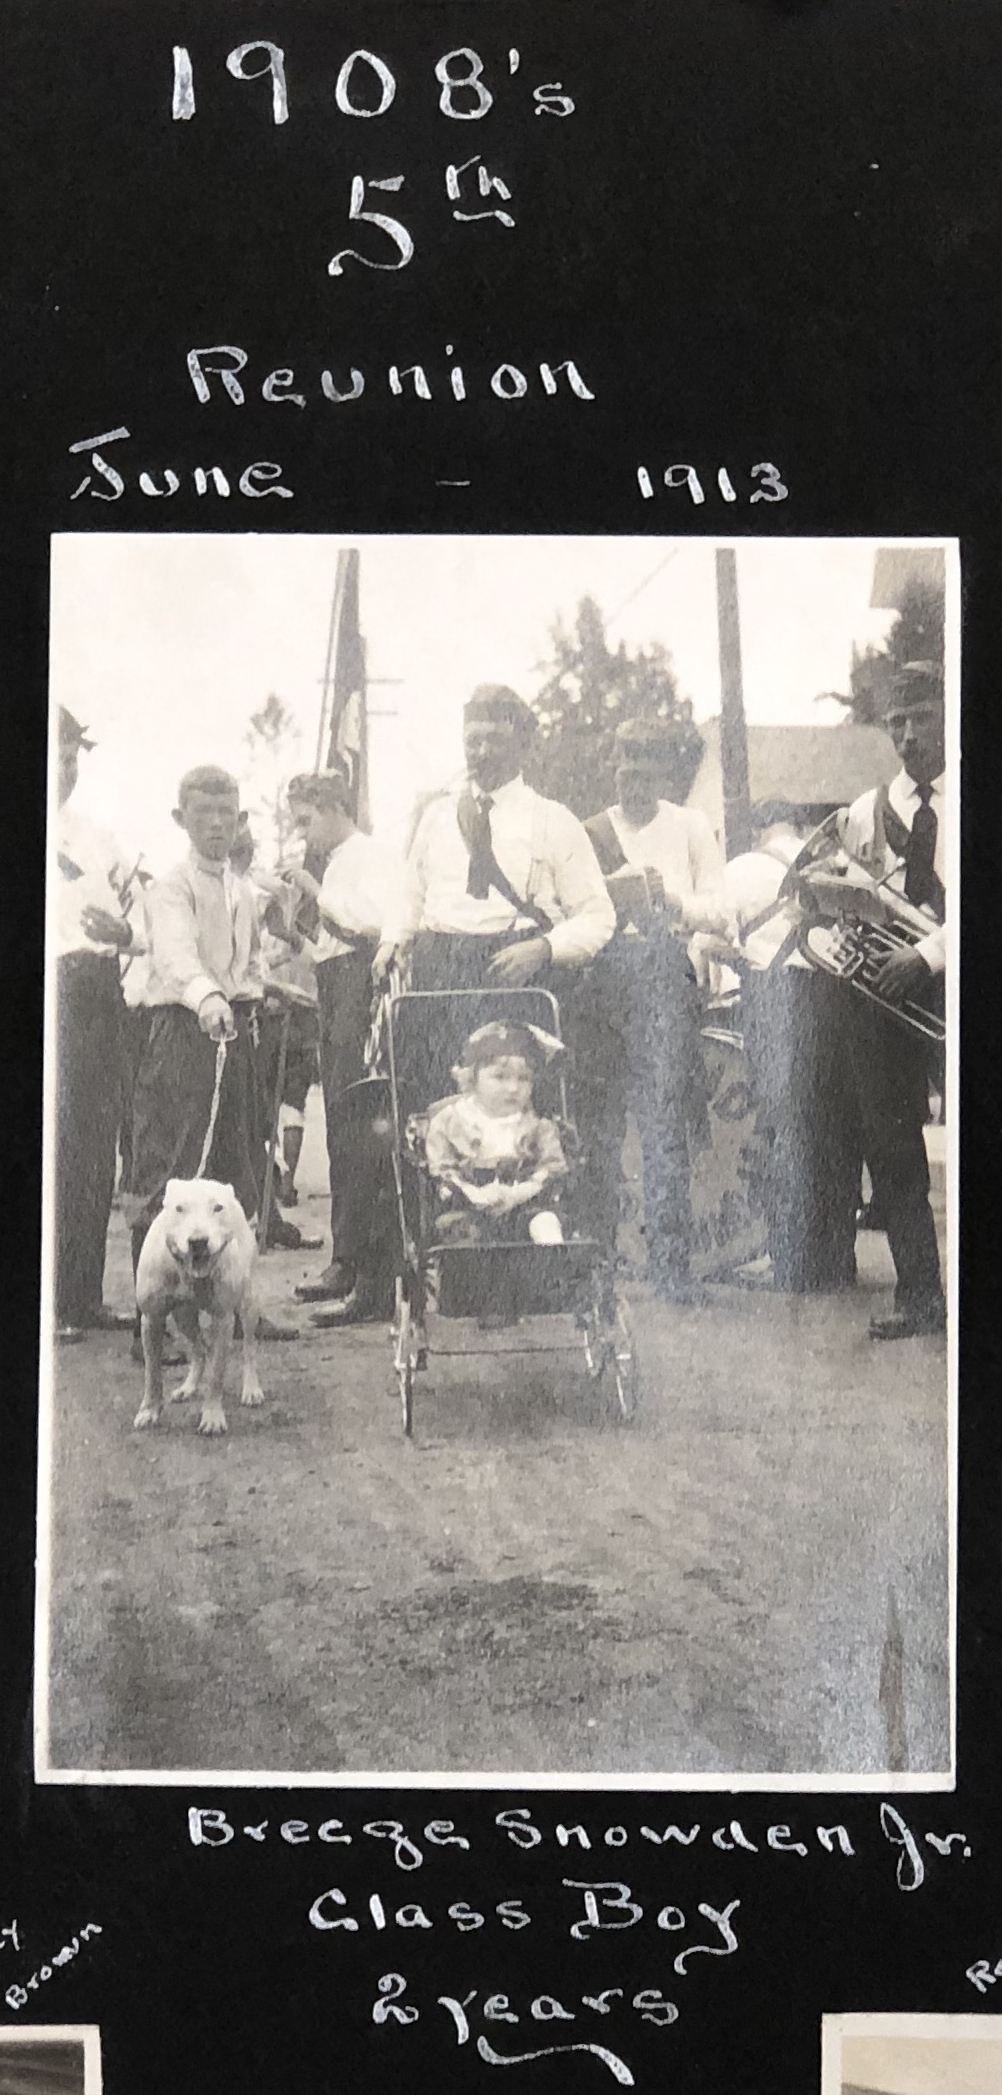 A black and white photography in an album shows a young boy in a stroller with the class of 1908 at their five-year reunion.